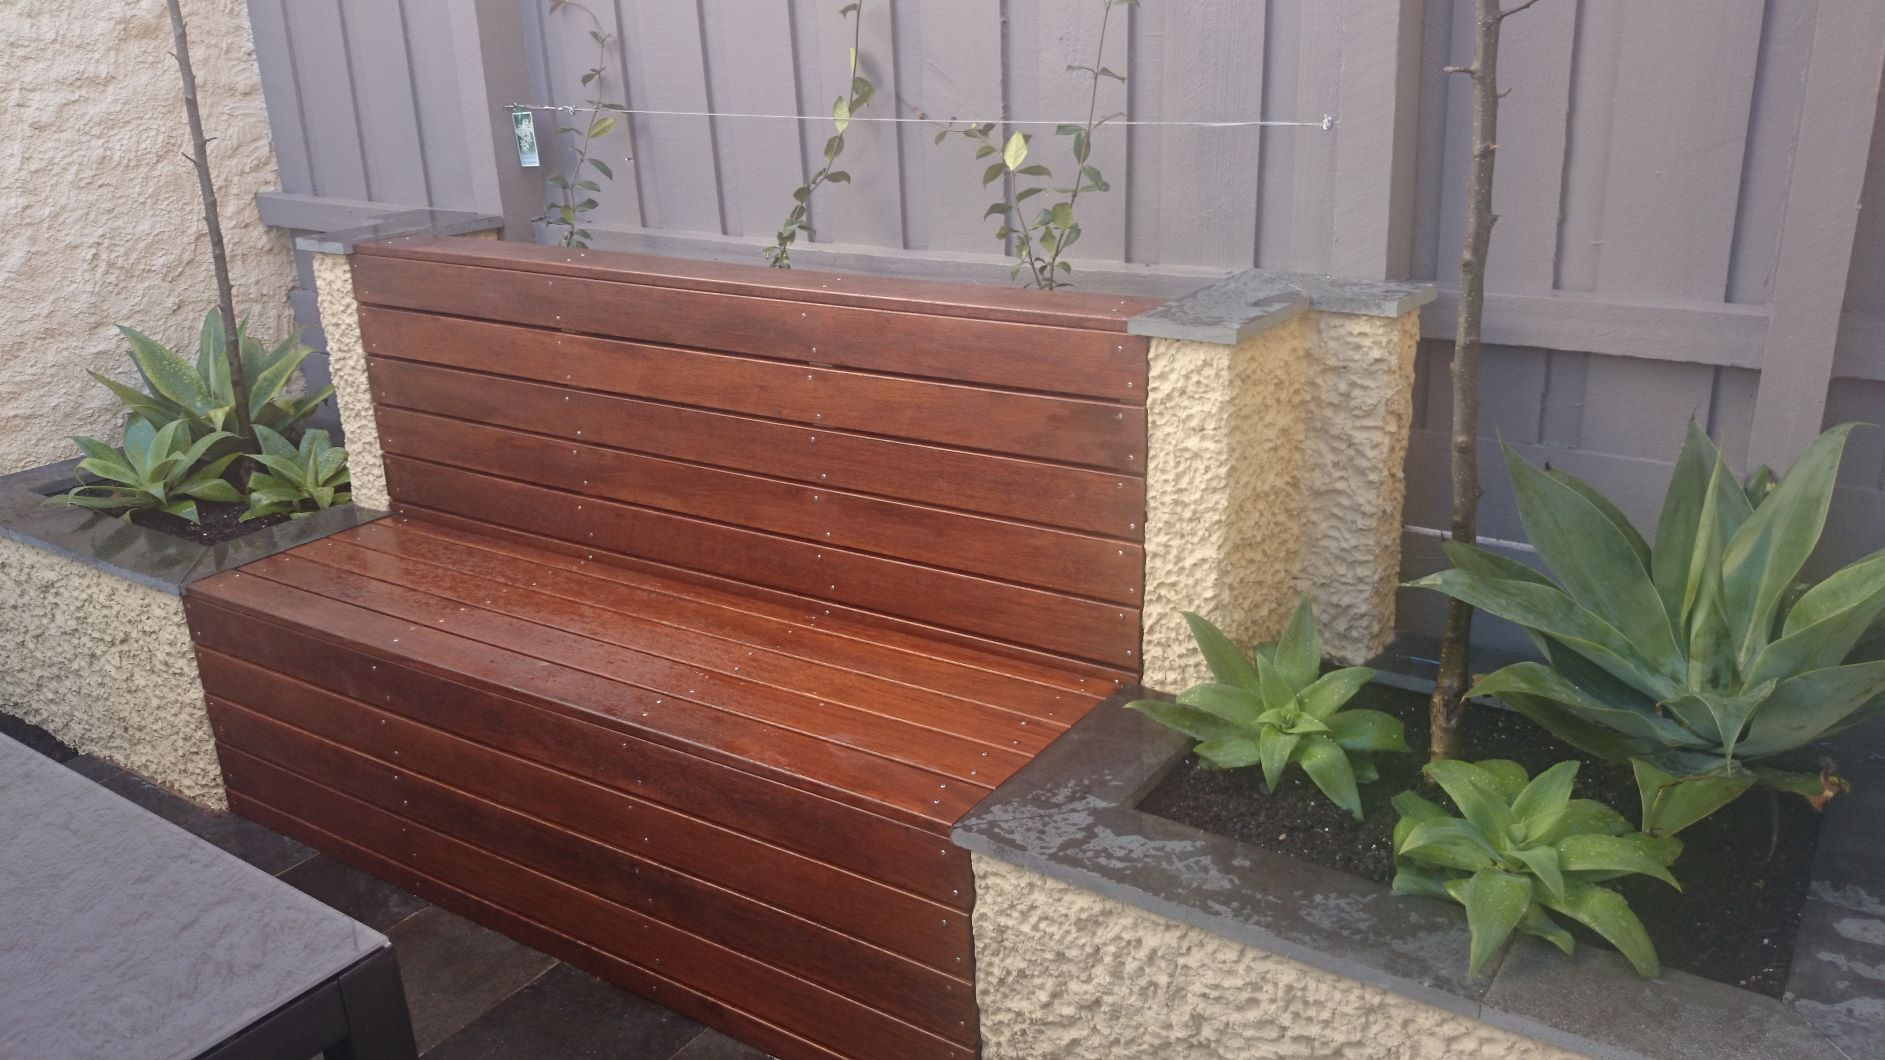 Built in timber seat, Brick rendered planter boxes, climbers on wire, Agaves, South Melbourne courtyard garden.